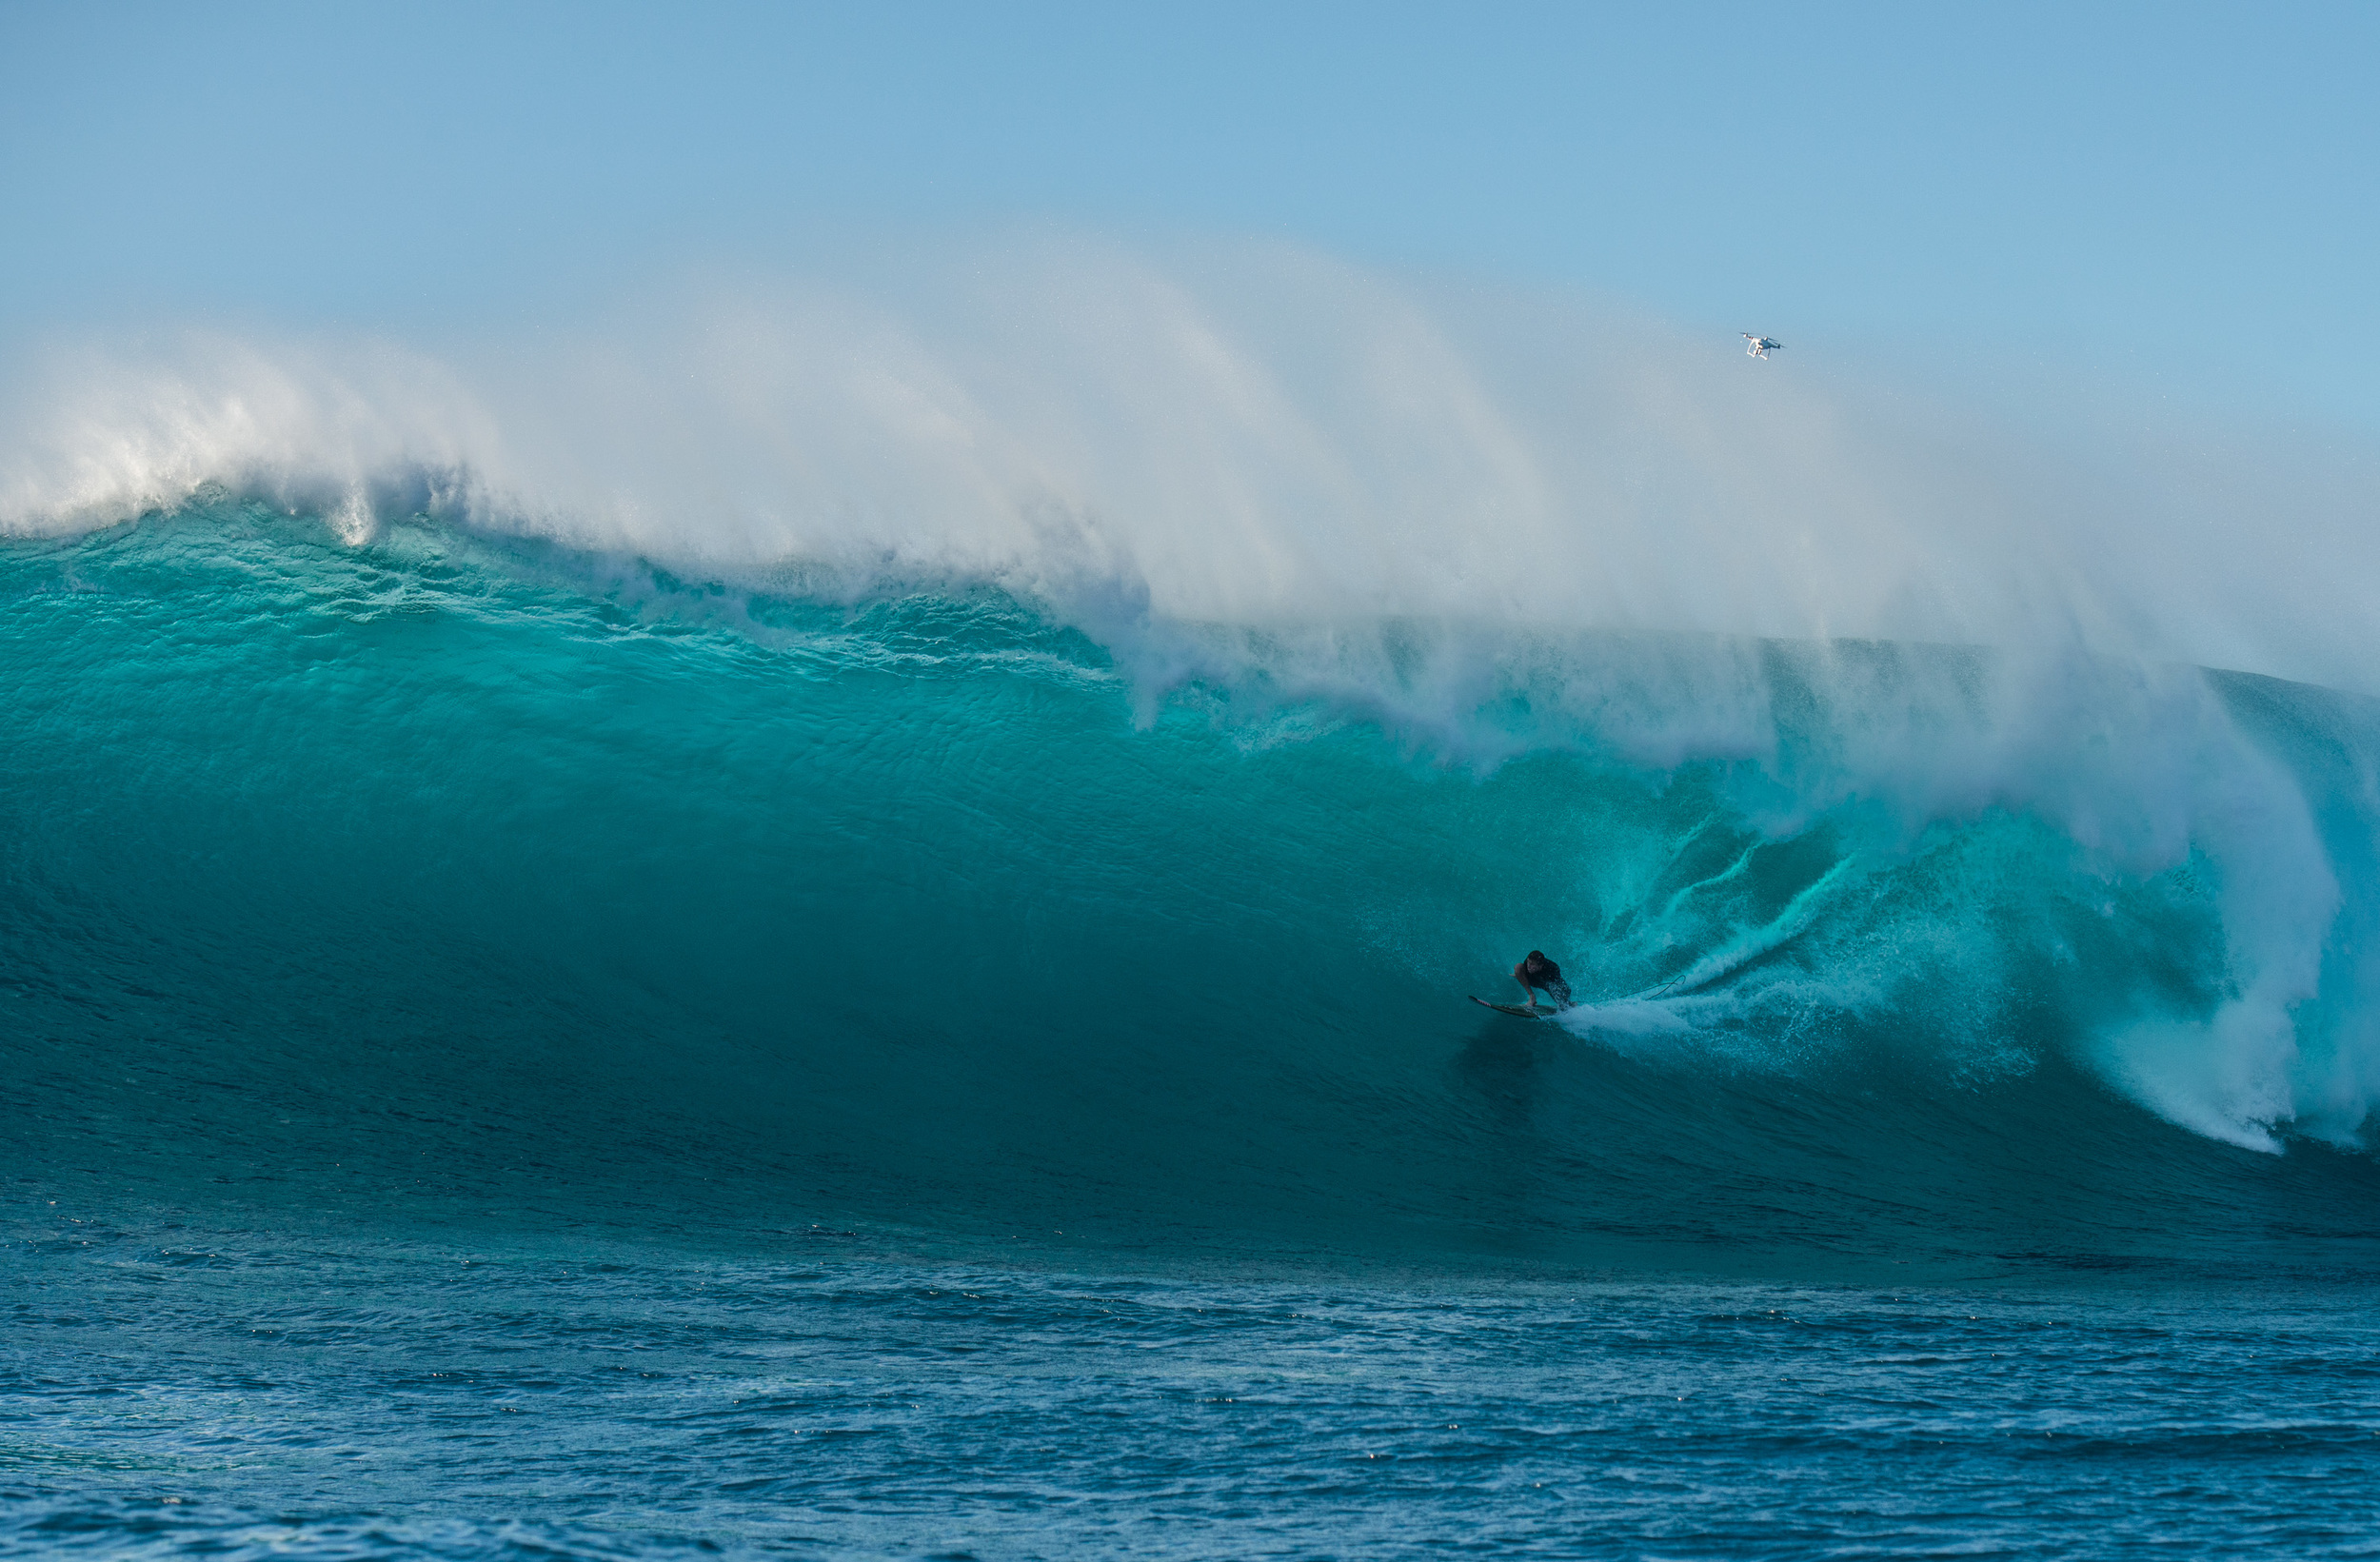 Mark Healey on bomb split seconds before getting barreled